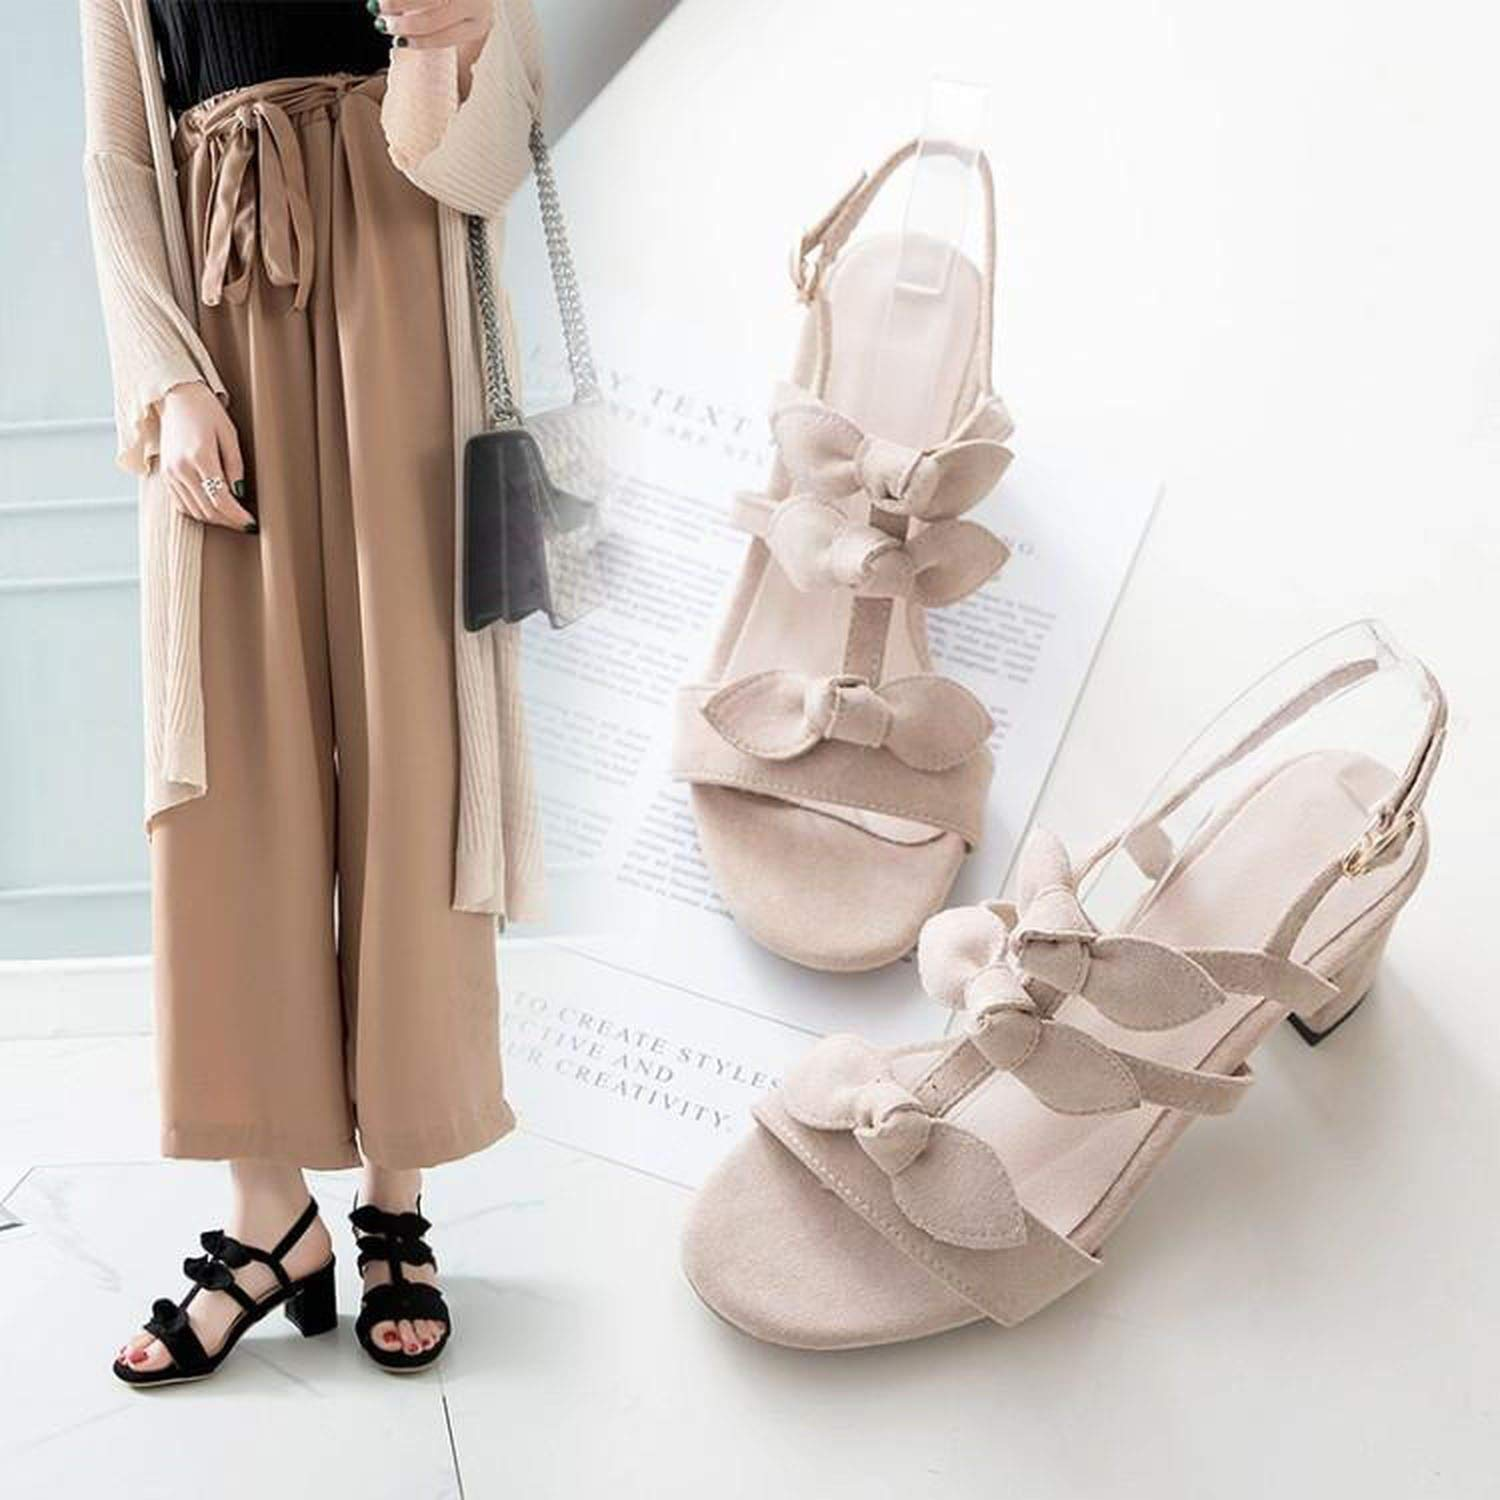 fly-consciousness Summer Sandals with Open-Toe Sheep Suede Youth One-Piece Buckle